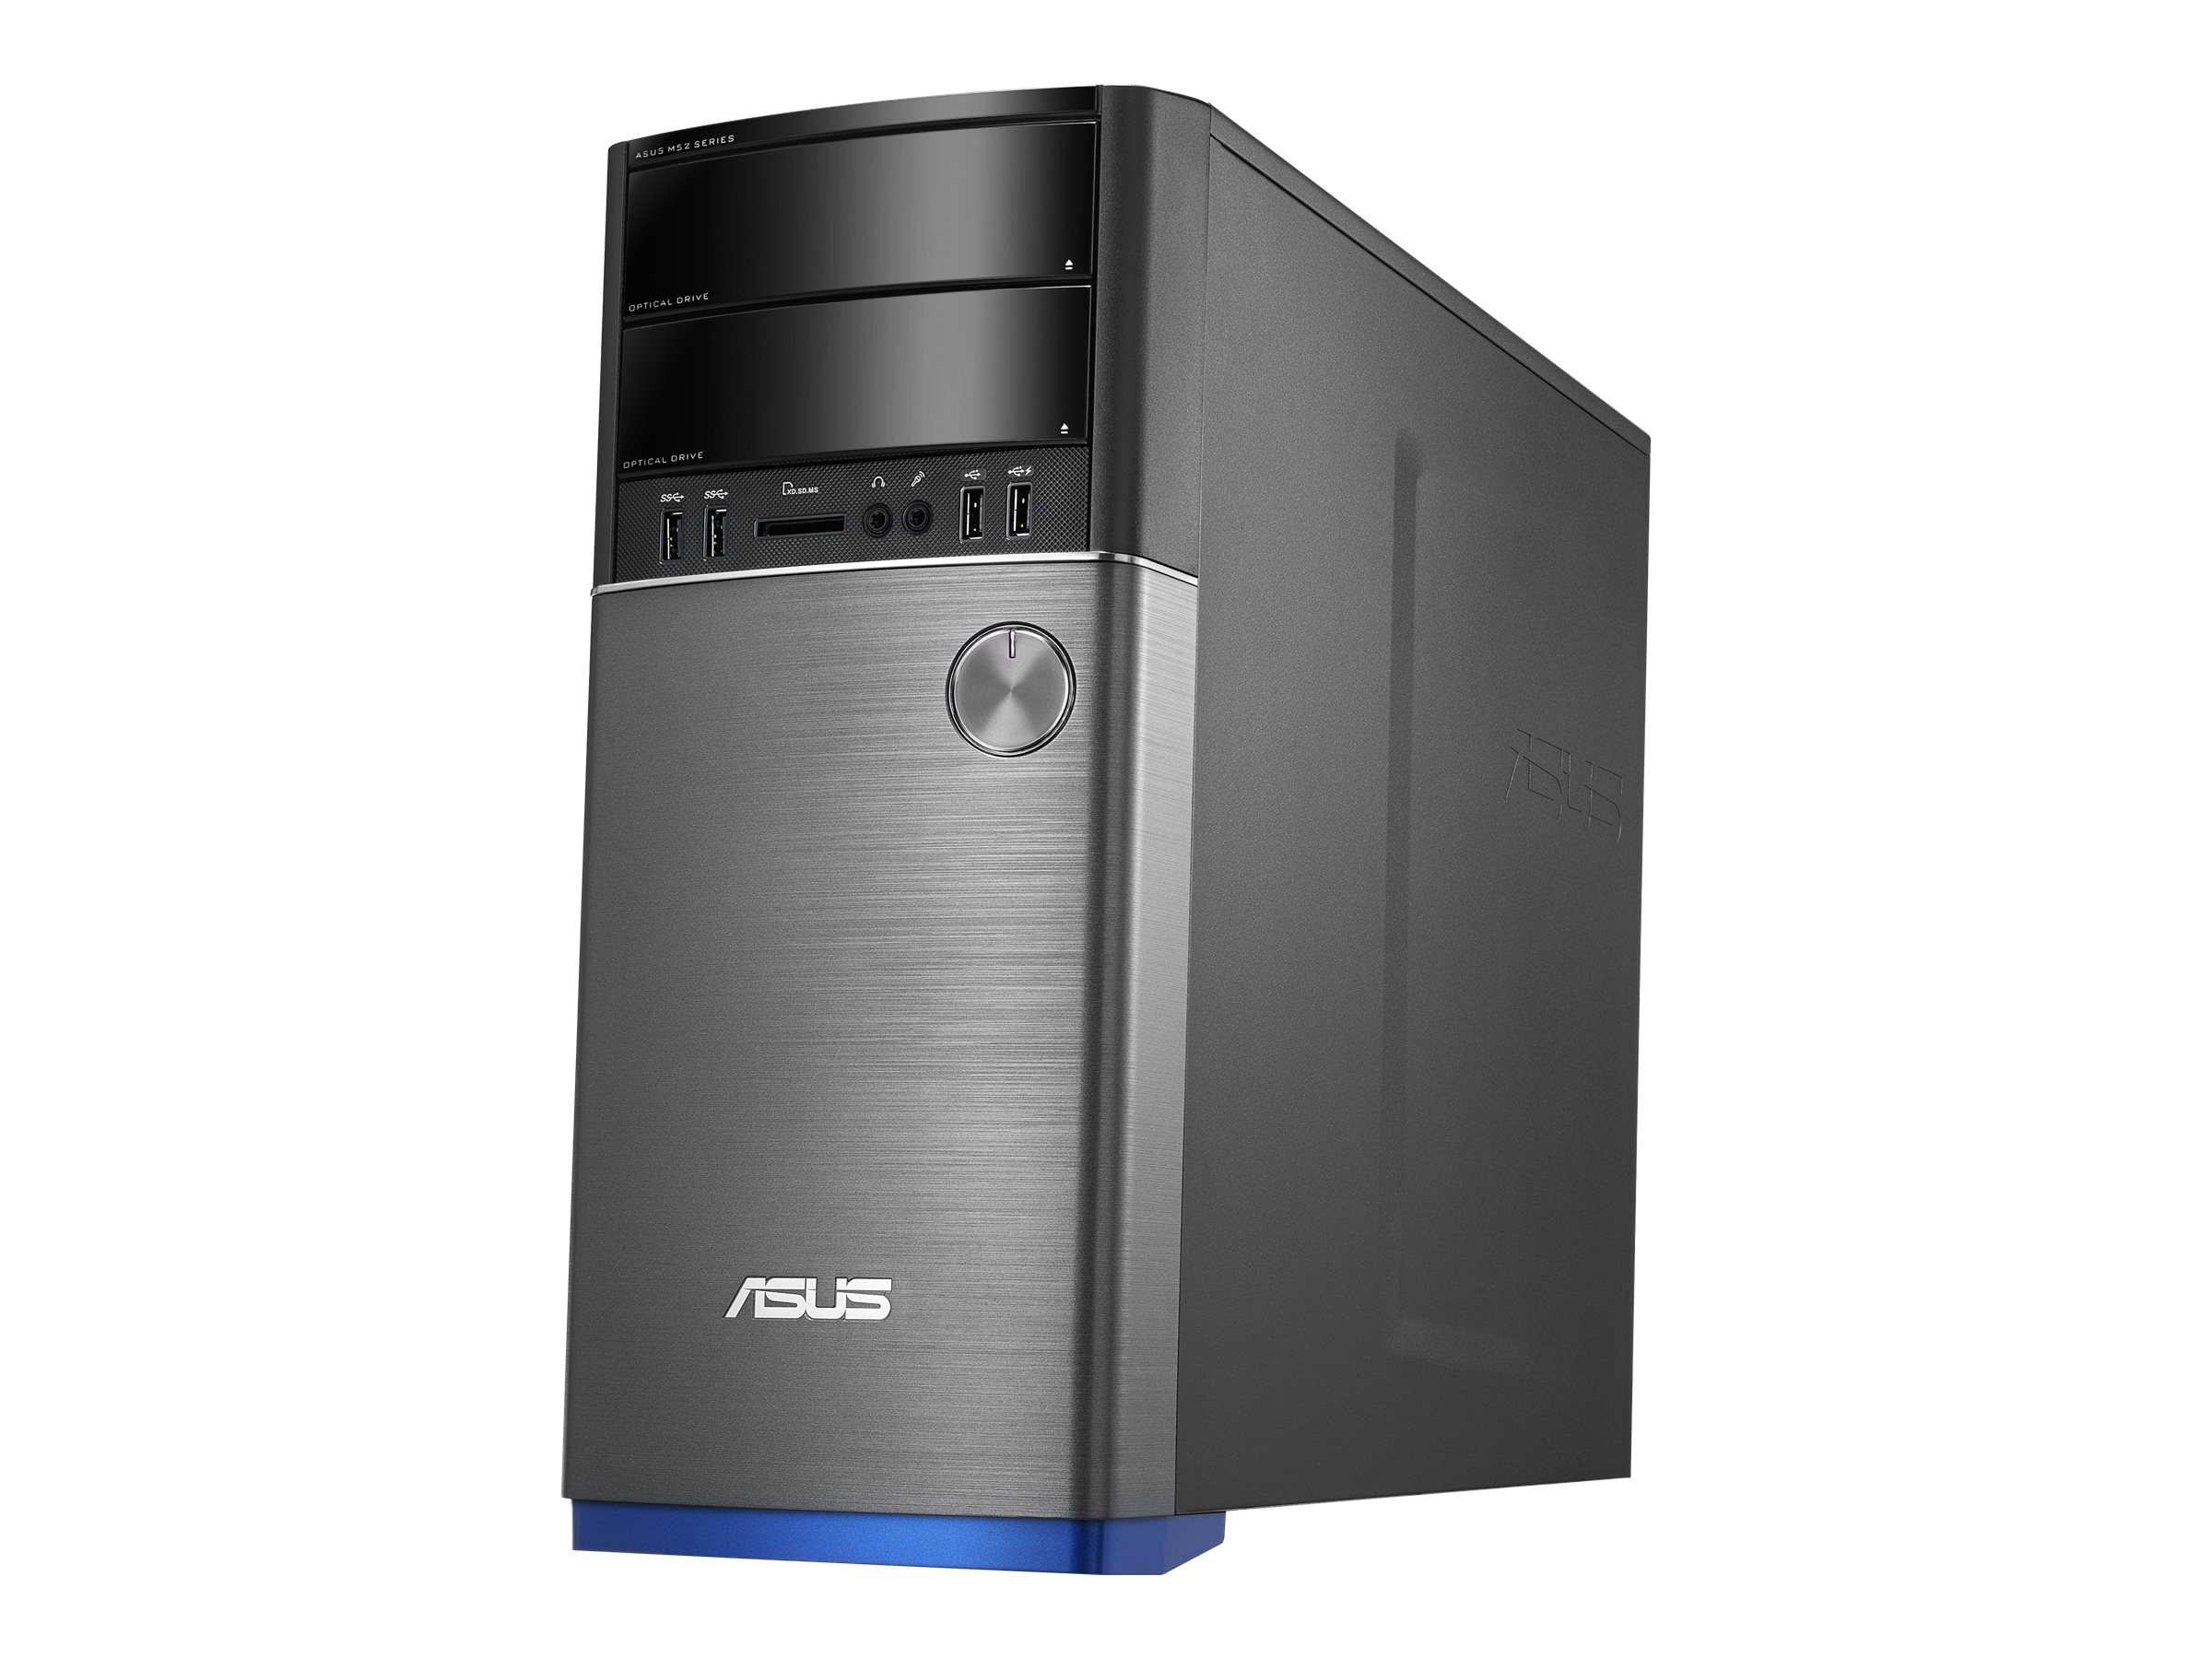 Asus M52BC-US003S Tower FX-8300 3.3GHz 8GB 2TB DVD-RW W8, M52BC-US003S, 17989821, Desktops